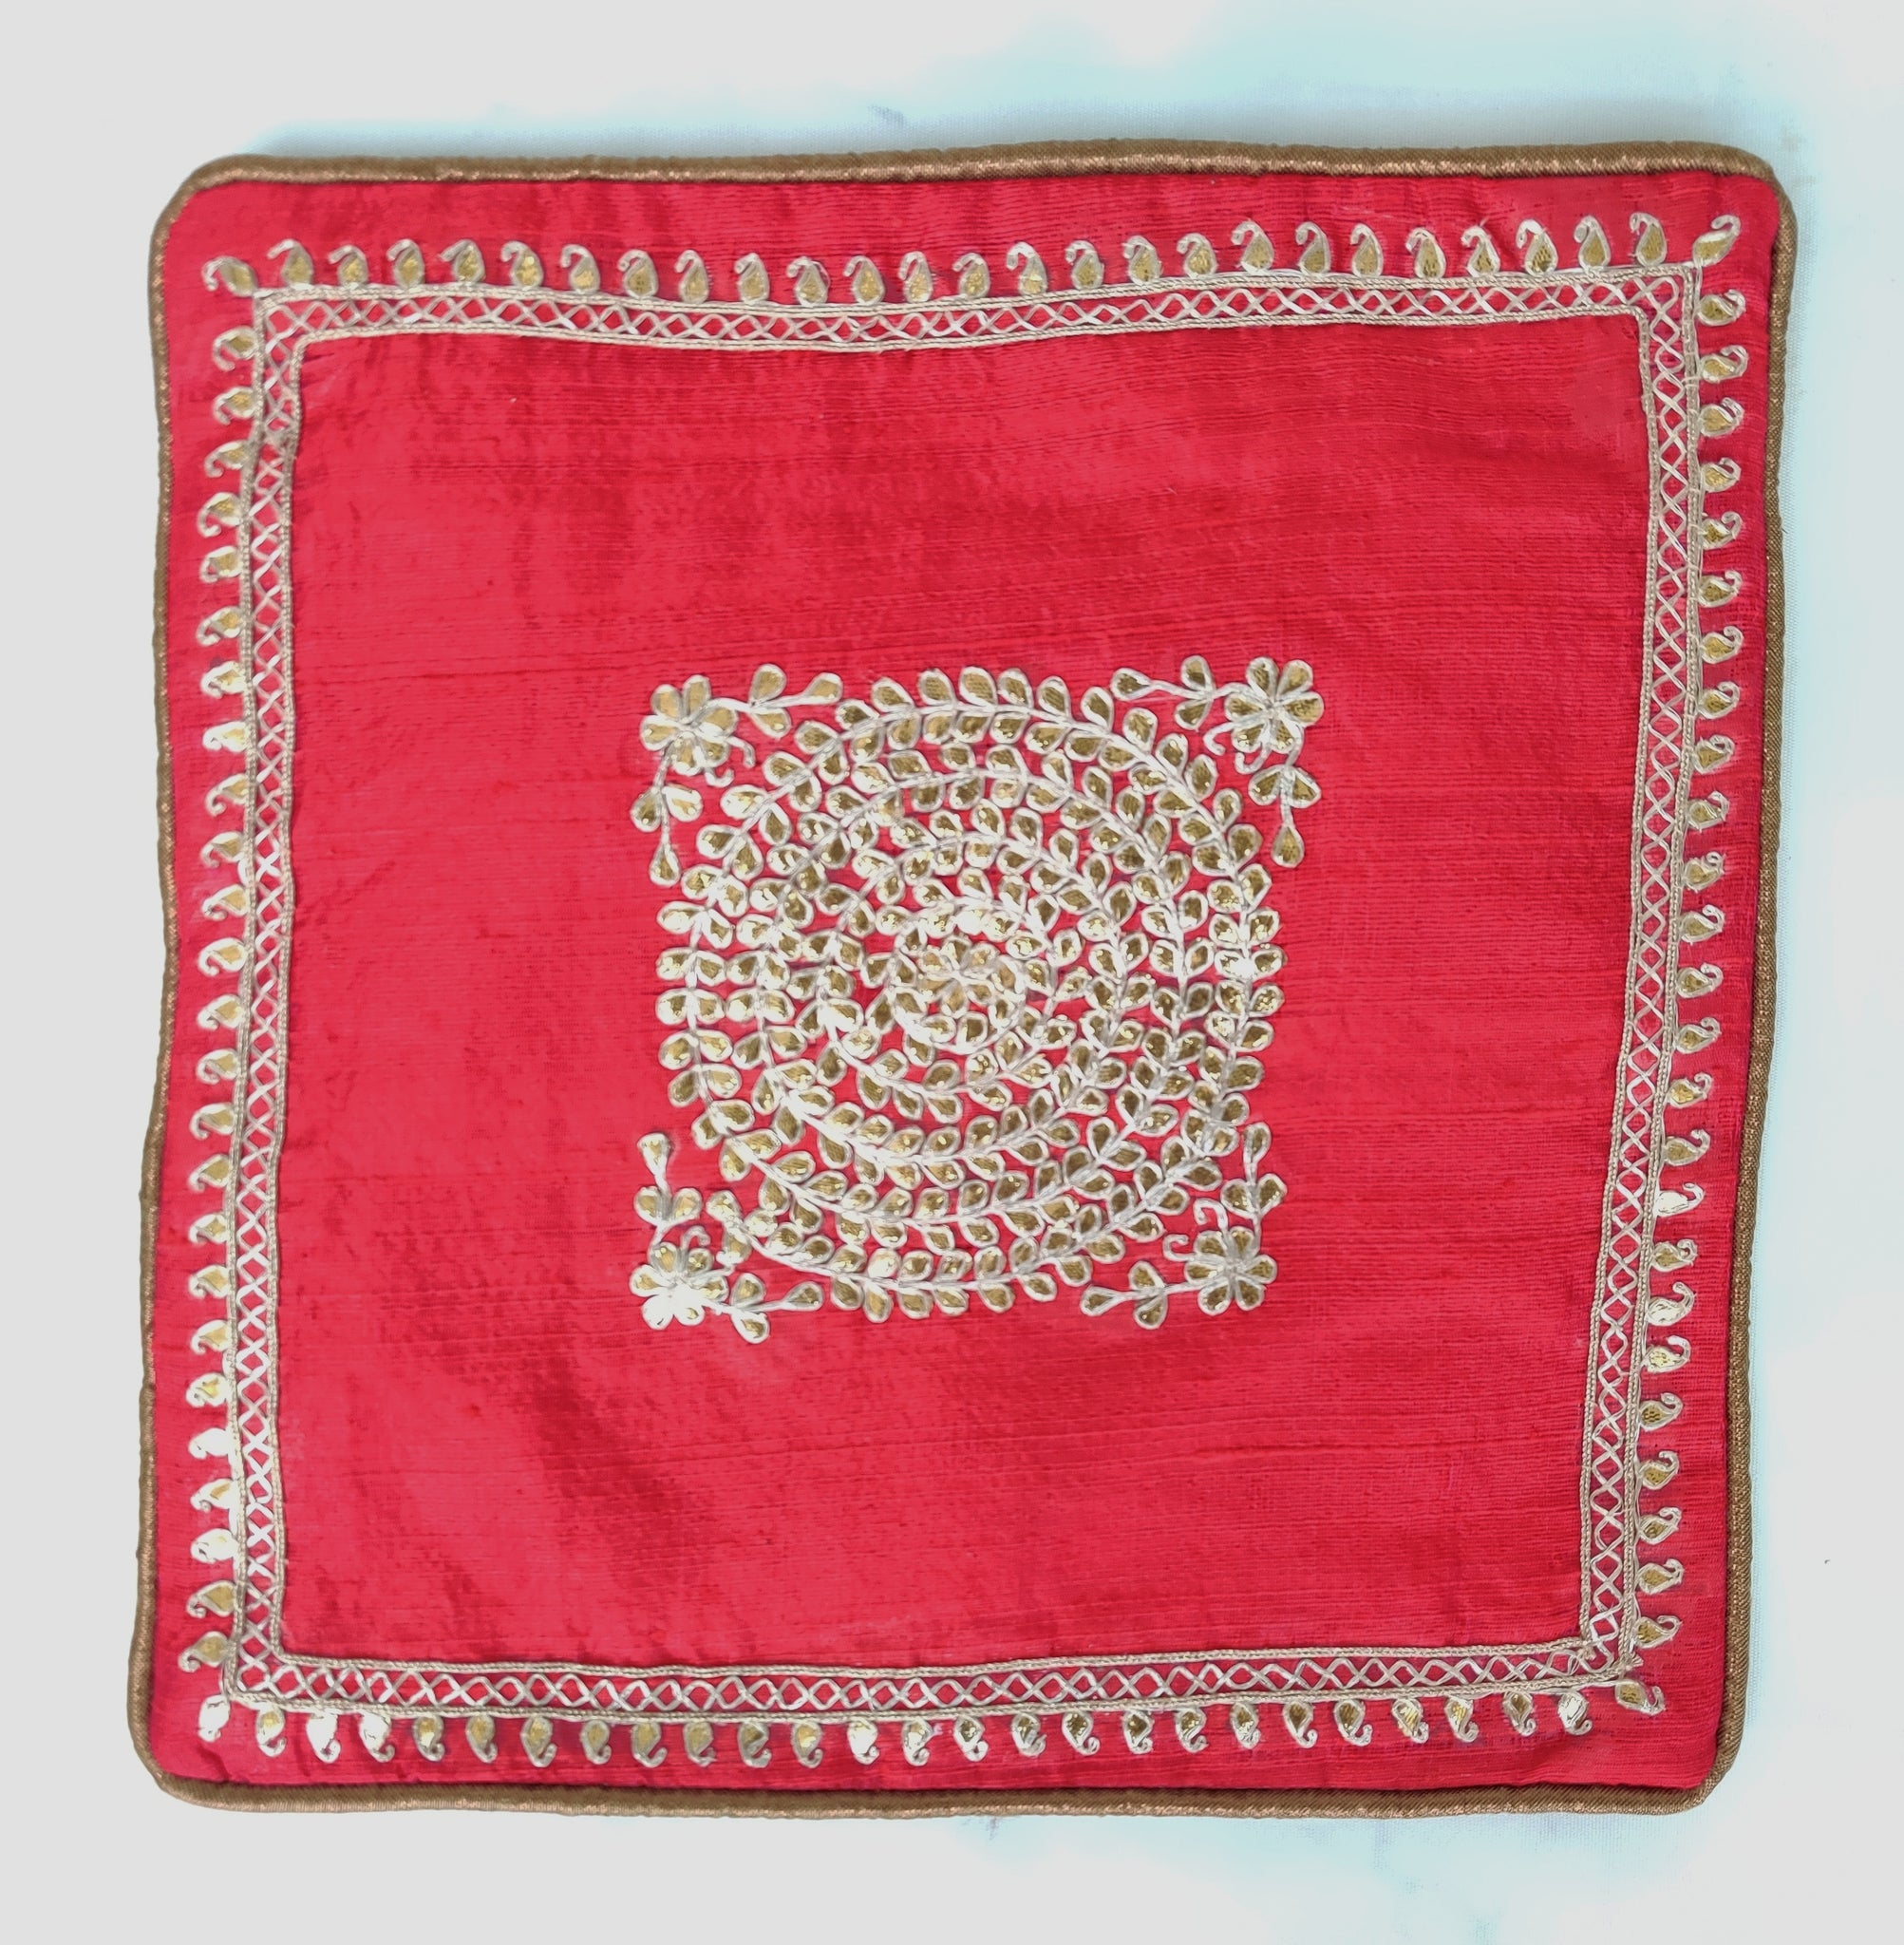 Pure silk gota Patti with zardozi work cushion cover - Rani pink - circular embroidery cushion cover - 12x12 inches - Pure silk